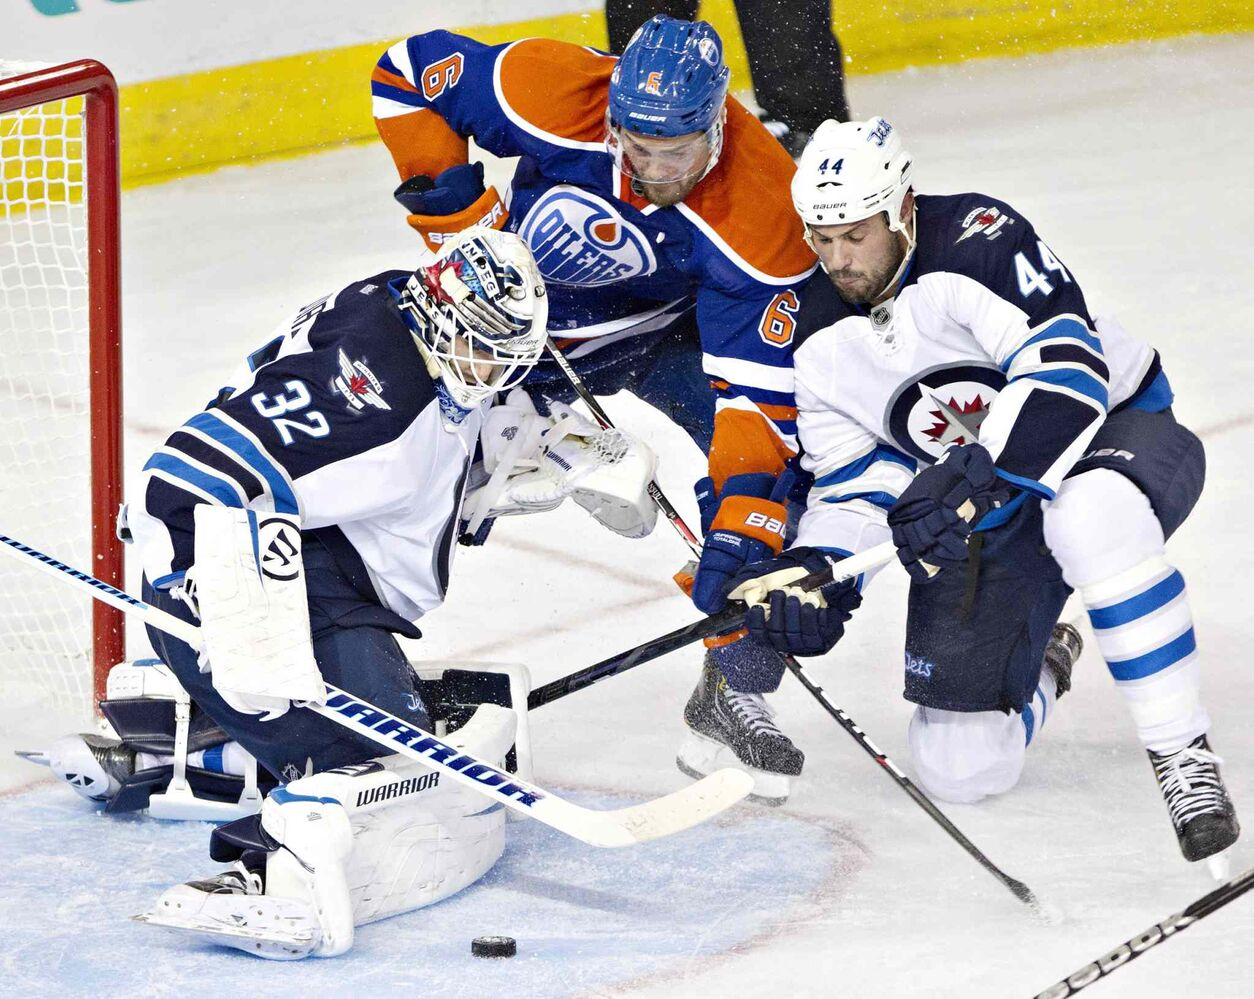 Winnipeg Jets goalie Edward Pasquale (32) makes a save as Zach Bogosian (44) and Edmonton Oilers Jesse Joensuu (6) battle for the rebound during the third period.